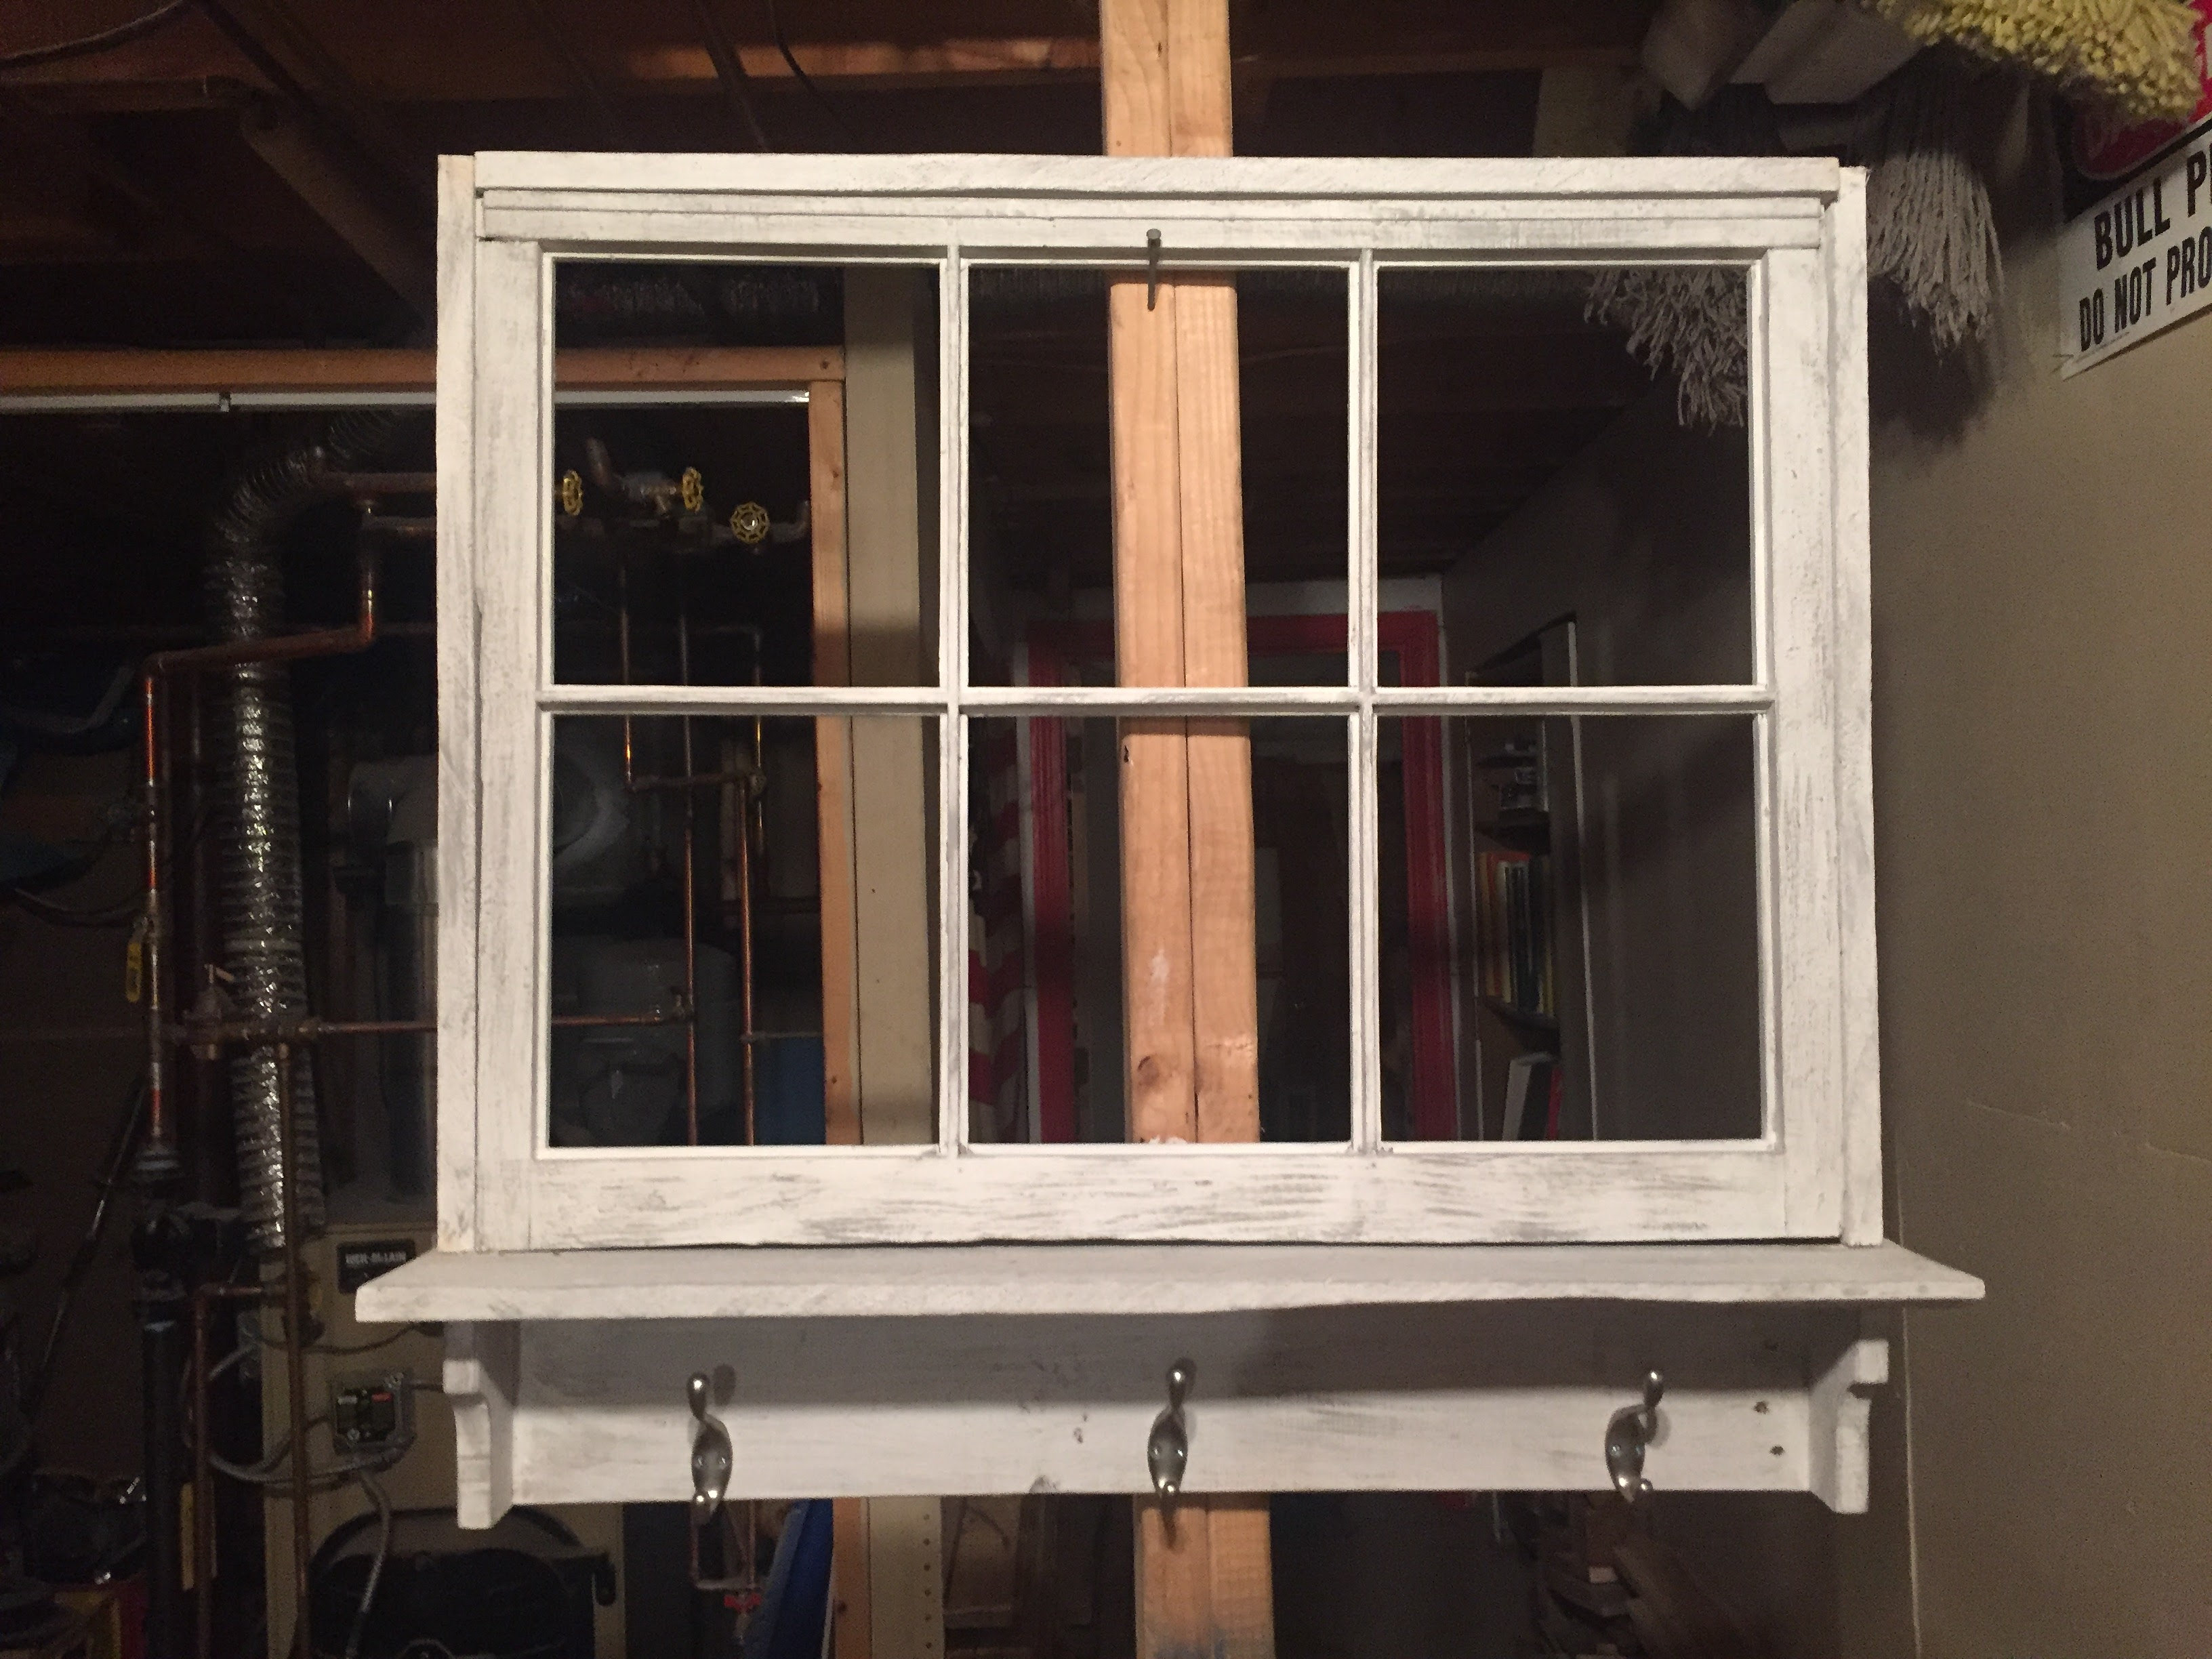 regionallyrustic window frame picture pic 1 window frame picture with 3 hooks come standard in distressed - Distressed Window Frame